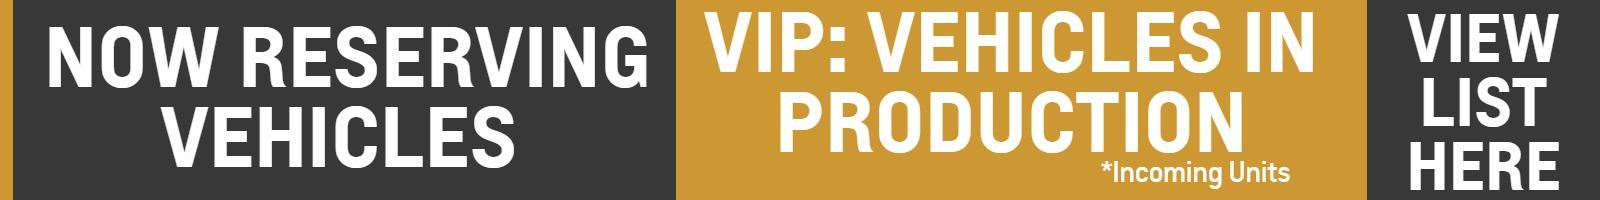 NOW RESERVING VEHICLES  VIP : VEHICLES IN PRODUCTION